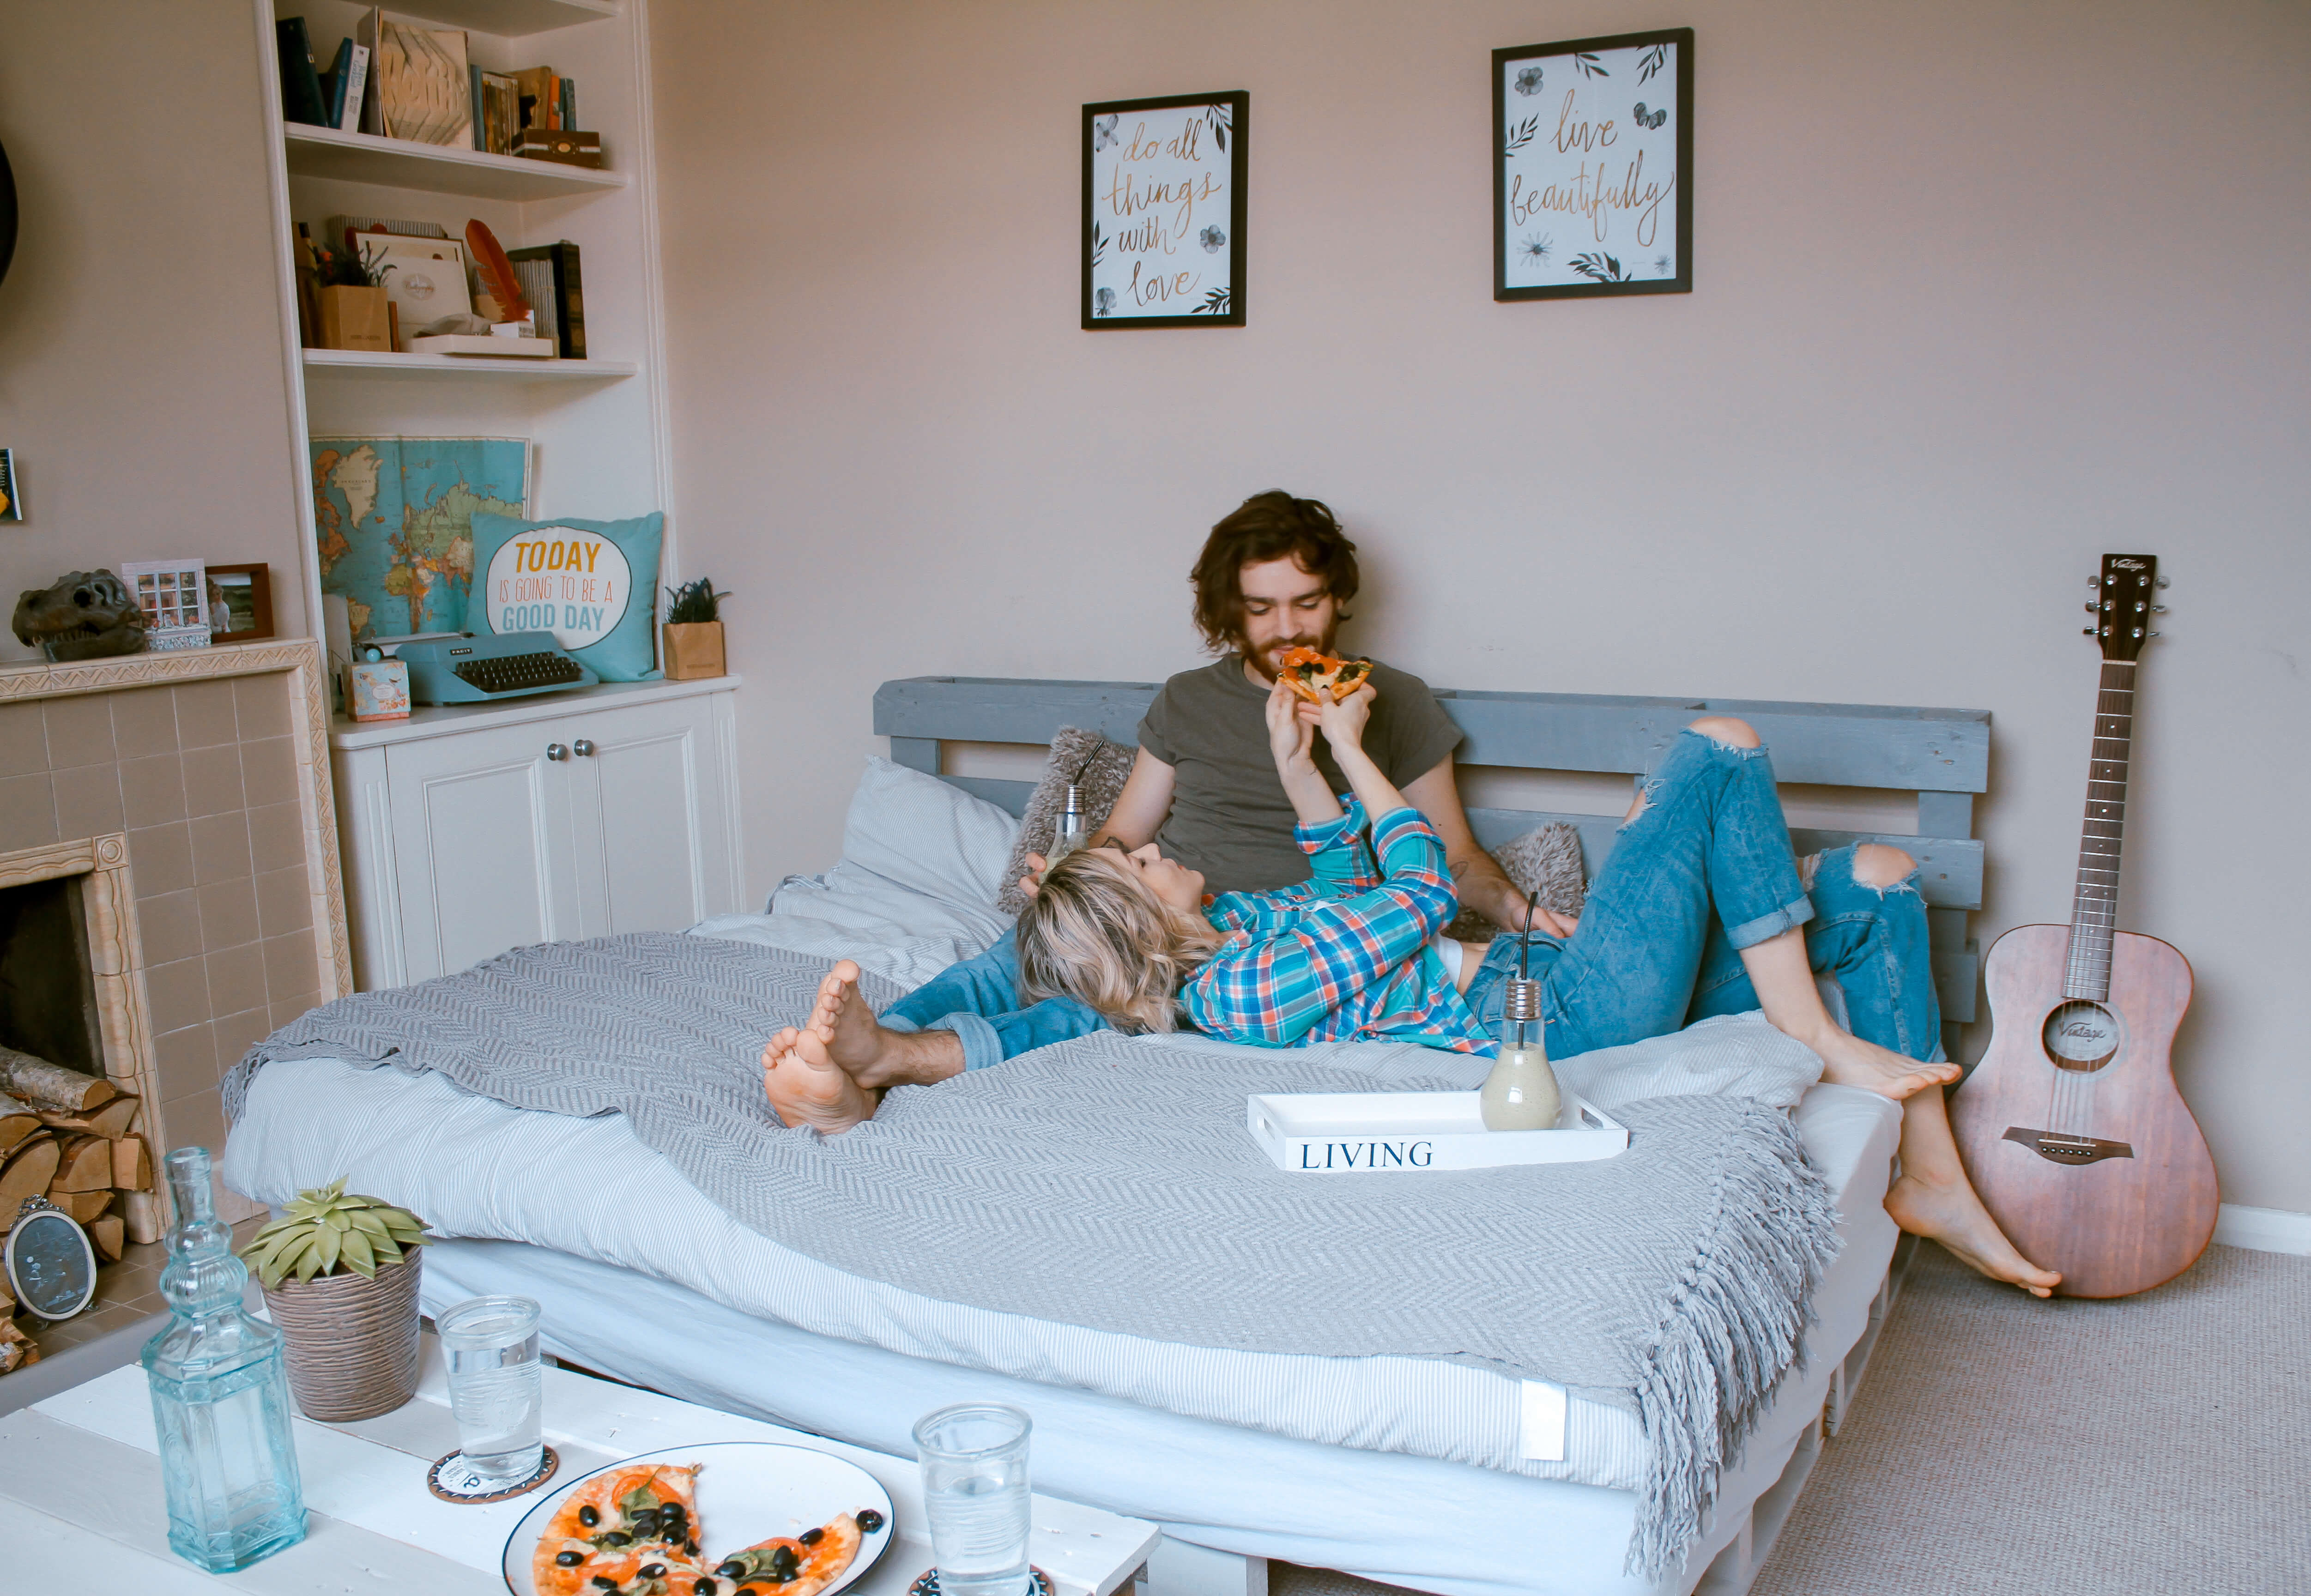 Couple laying on a bed